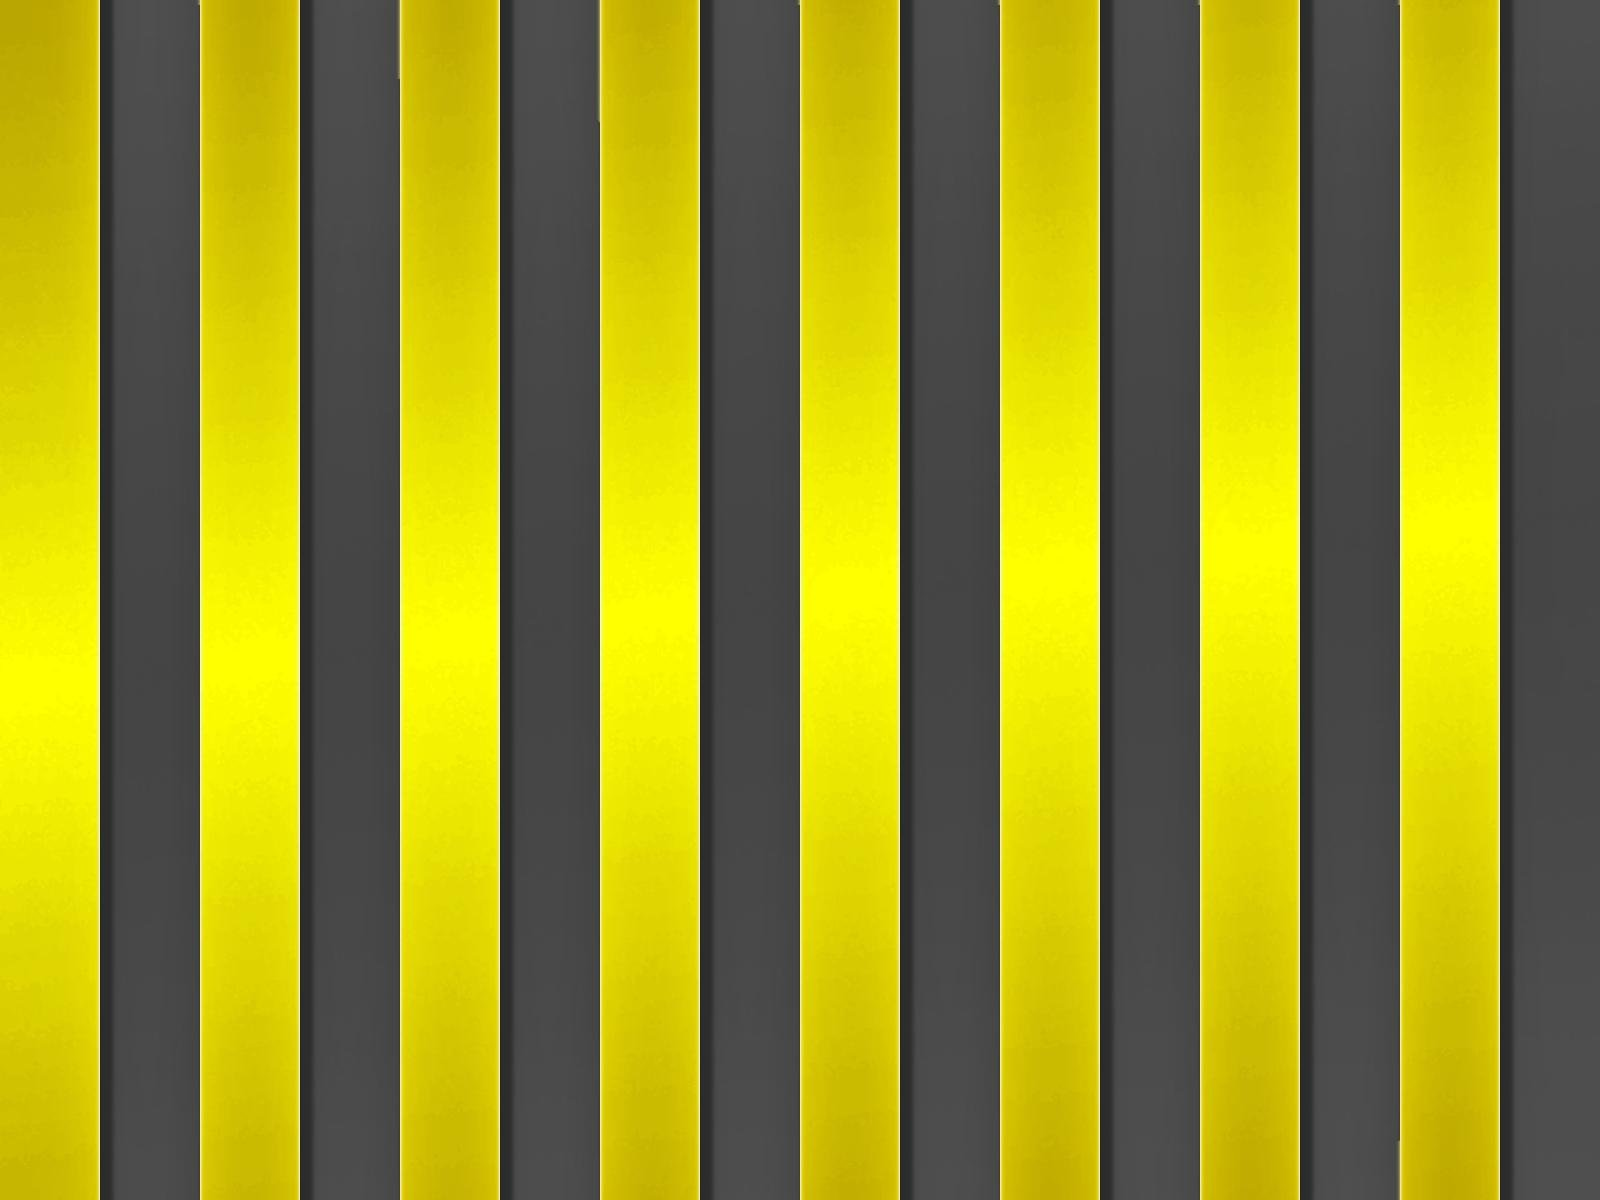 Yellow Gray Wallpapers Stock Photos 1600x1200